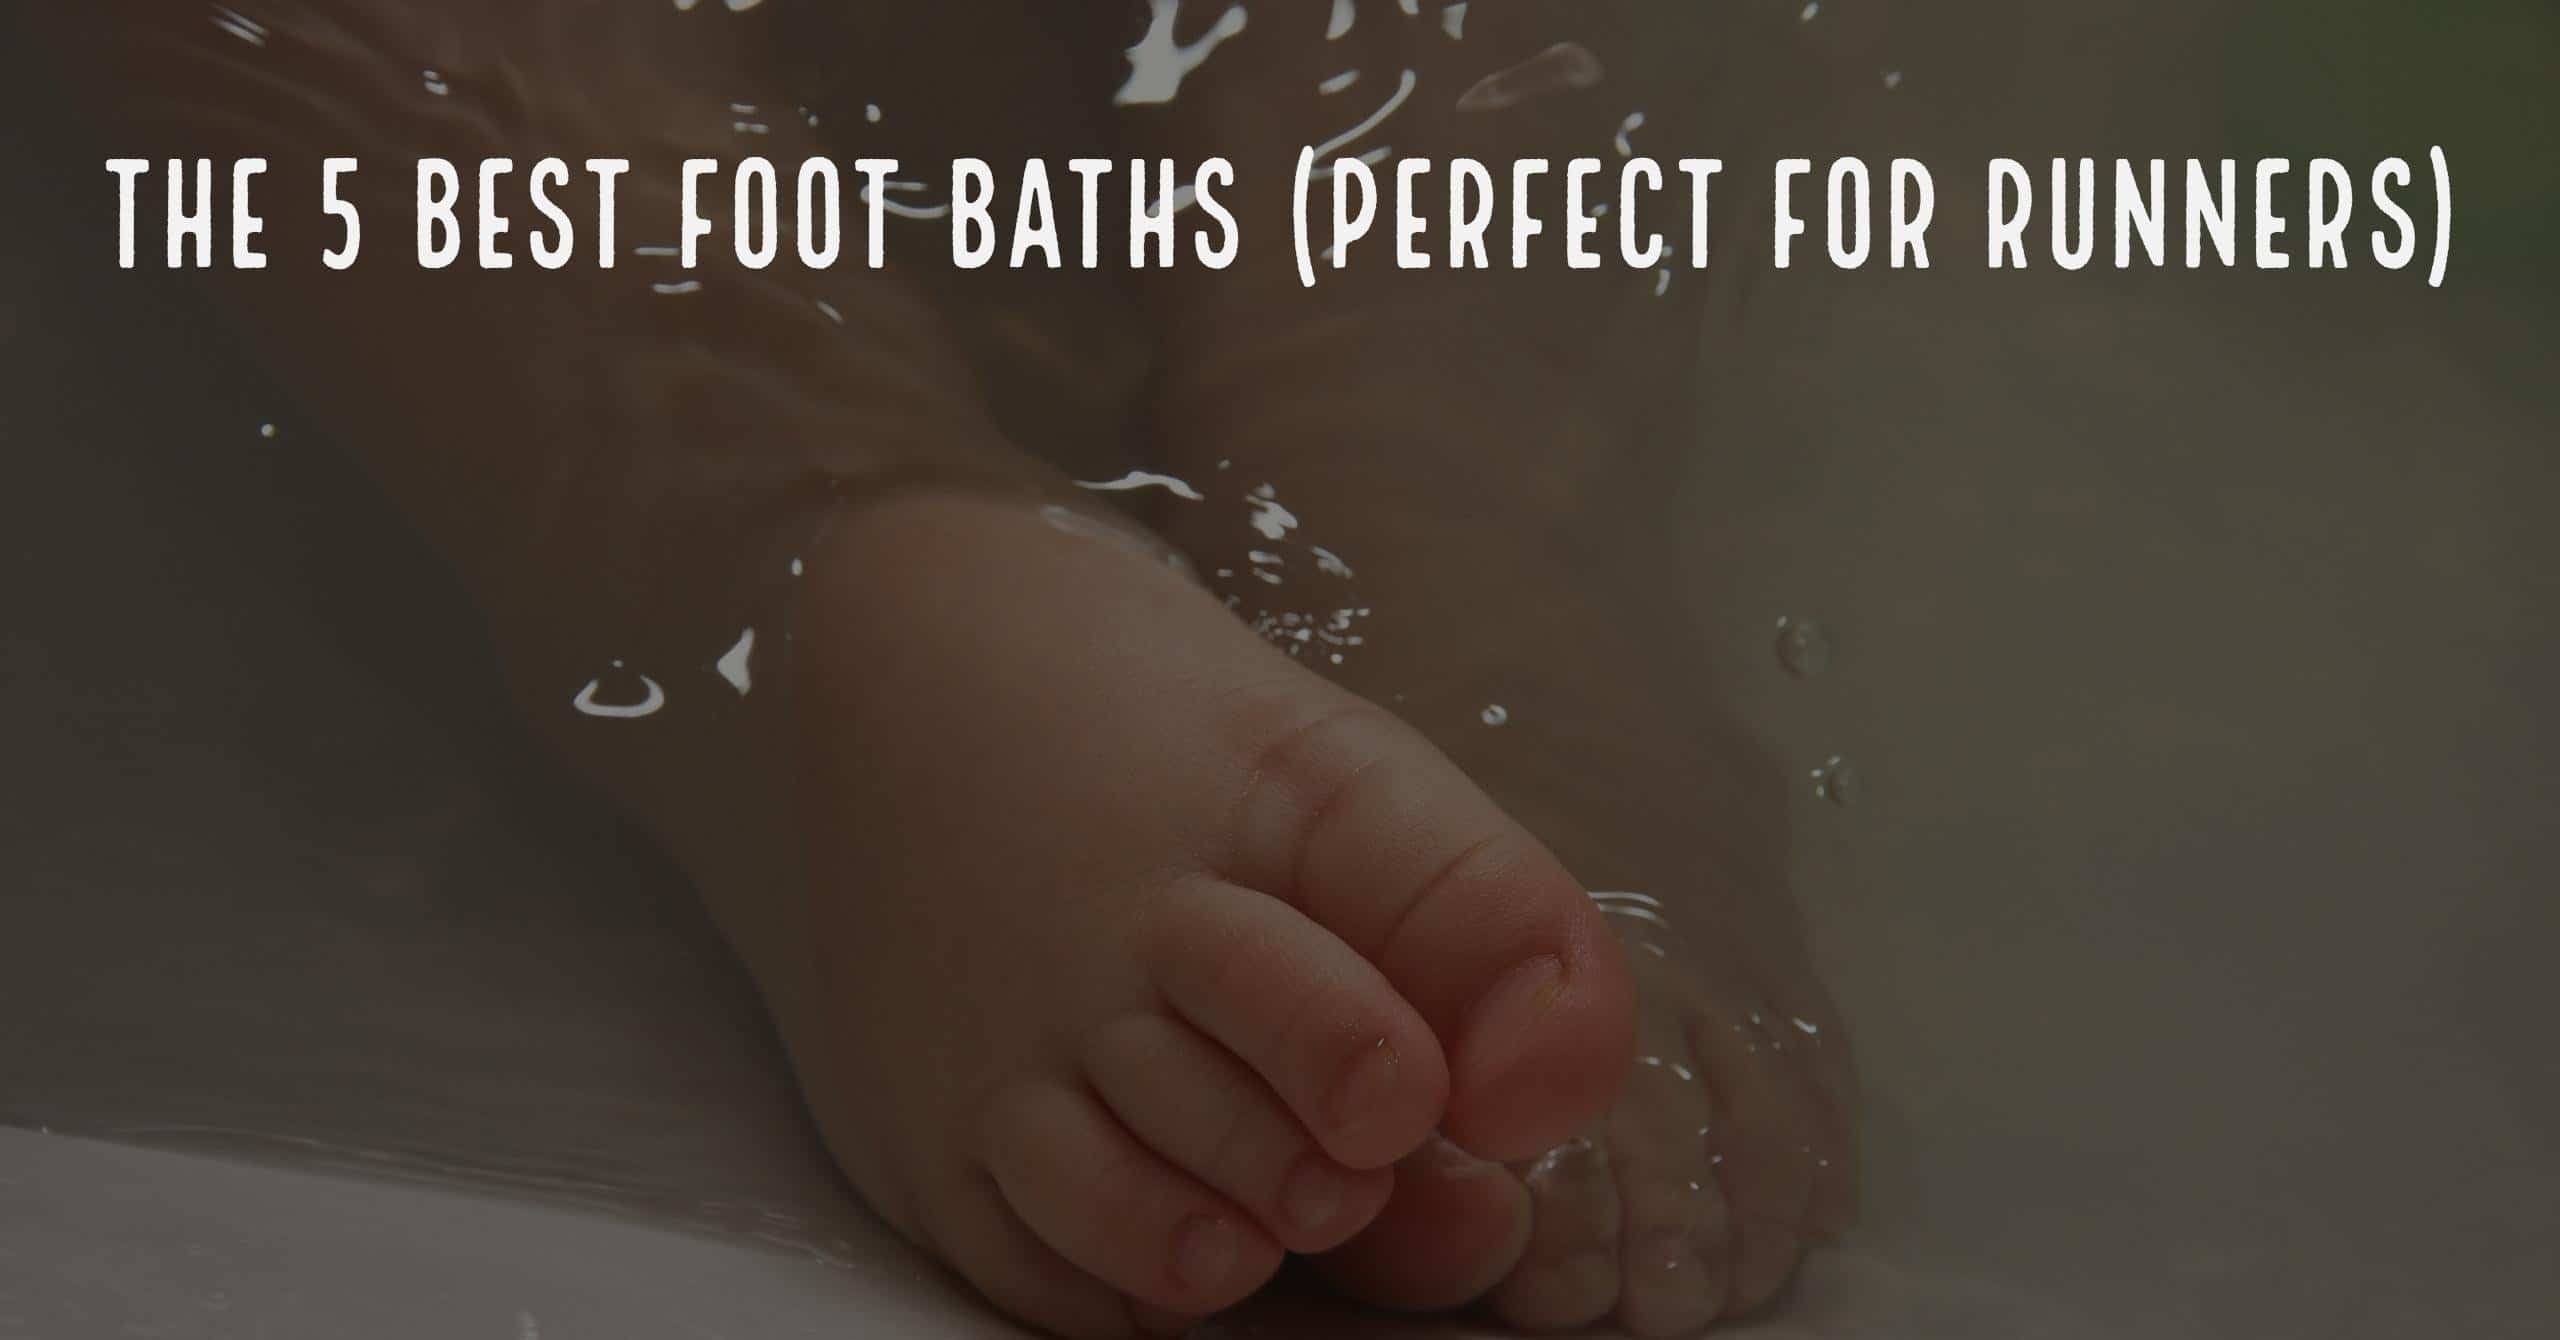 If you're a runner, you've probably had your fair share of aching foot pain. The good thing is that the pain barely lasts two days and, in most cases, it goes away naturally. One way to alleviate the pain is by investing in a foot bath. I break down our five favorite (including the one I purchased) with the 5 best foots baths